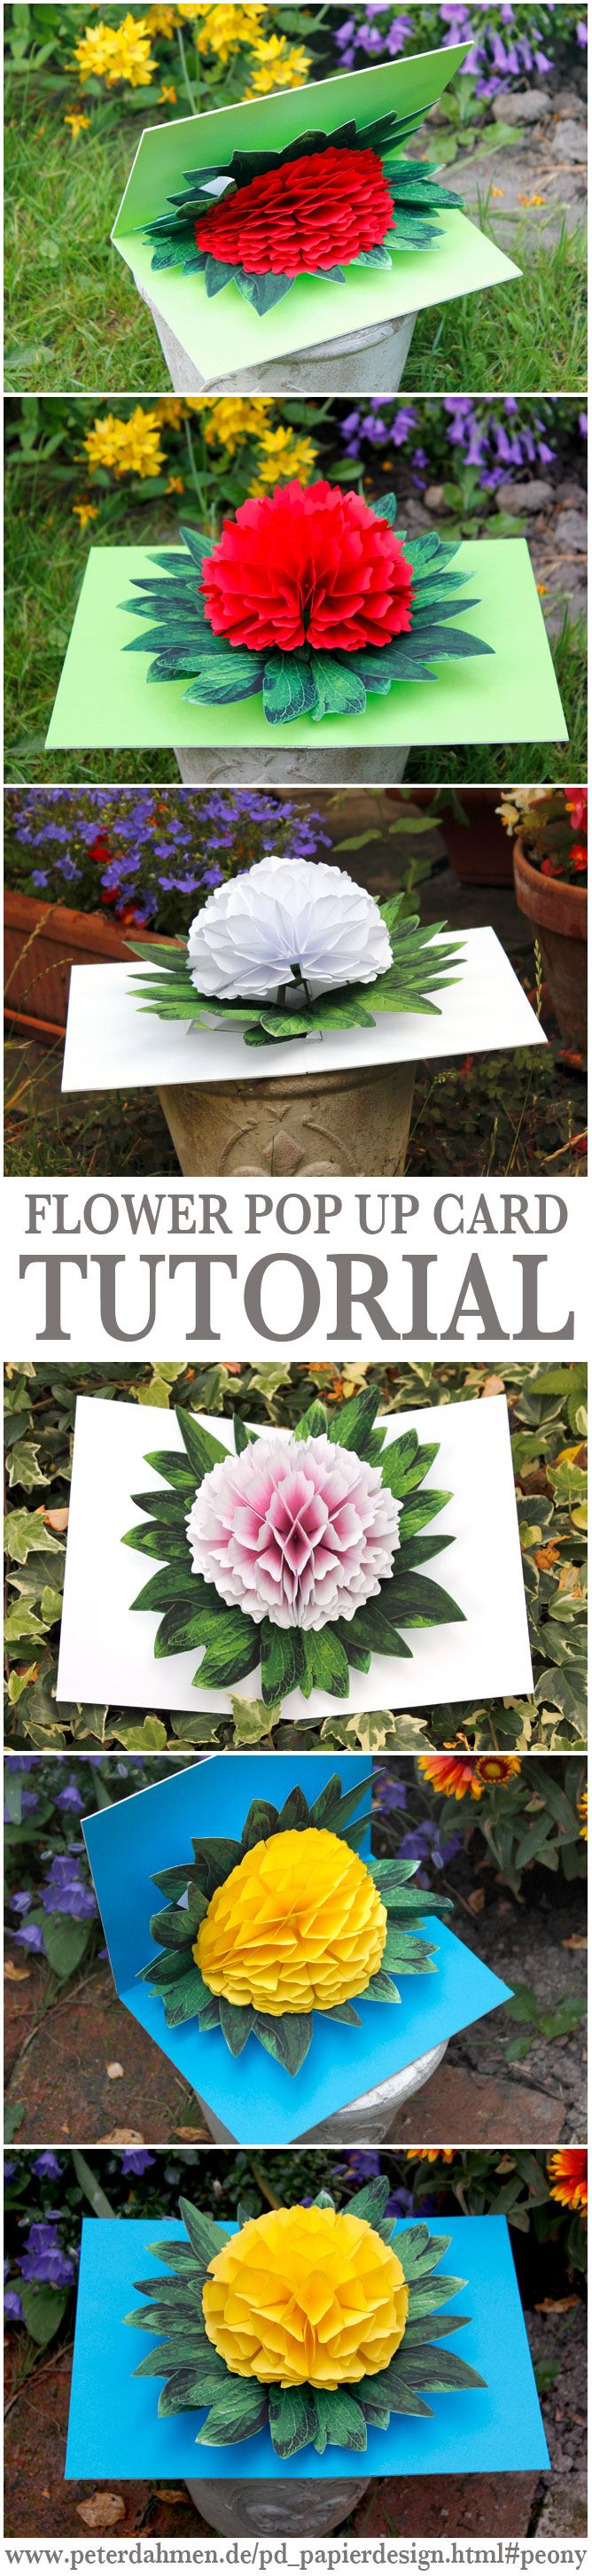 Perfect for Mother's Day! Flower Pop Up Card Tutorial by Peter Dahmen (just click on the flower to go to the tutorial)